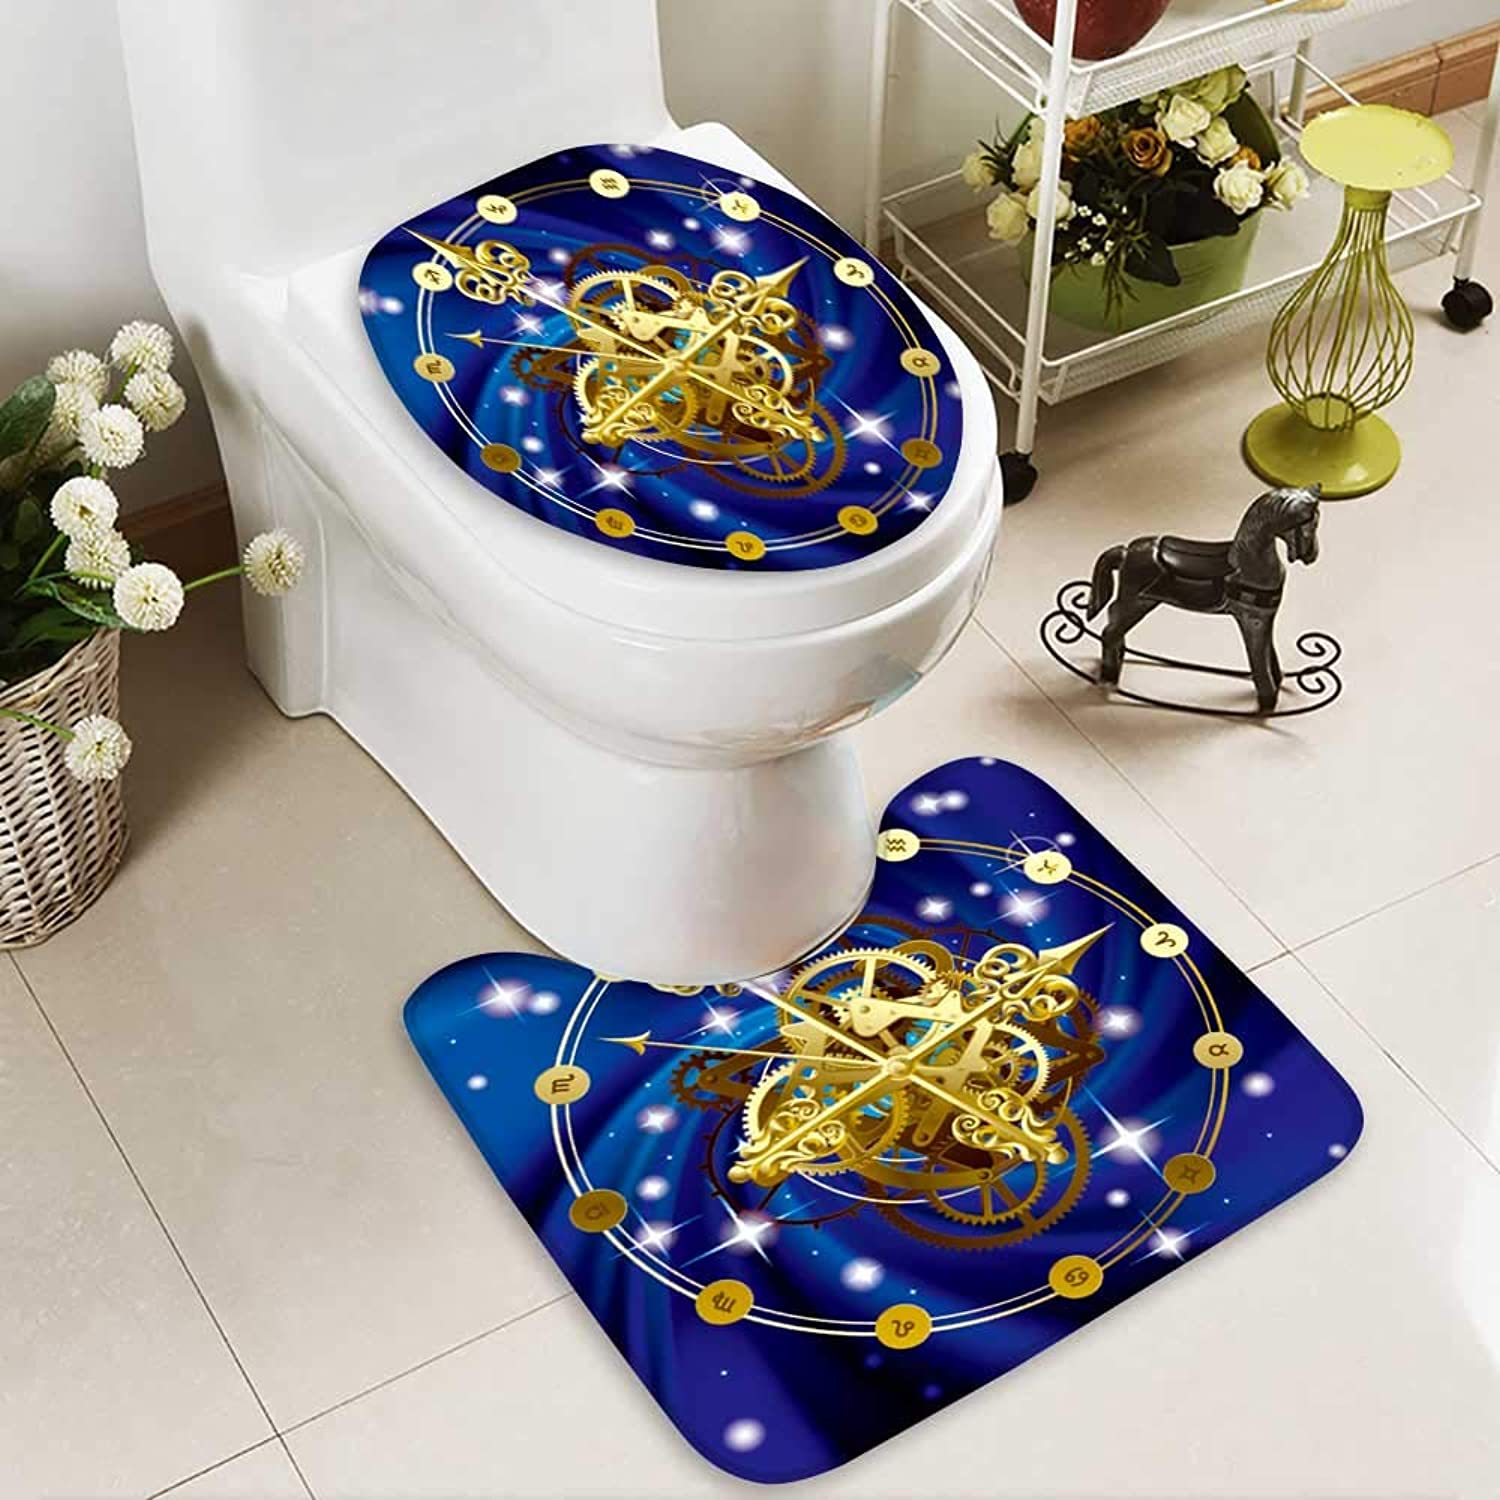 Analisahome 2 Piece Toilet lid Cover mat Set Vector Image of gold Round Clock with Decorative Hour Hands cogwheels Washable Non-Slip